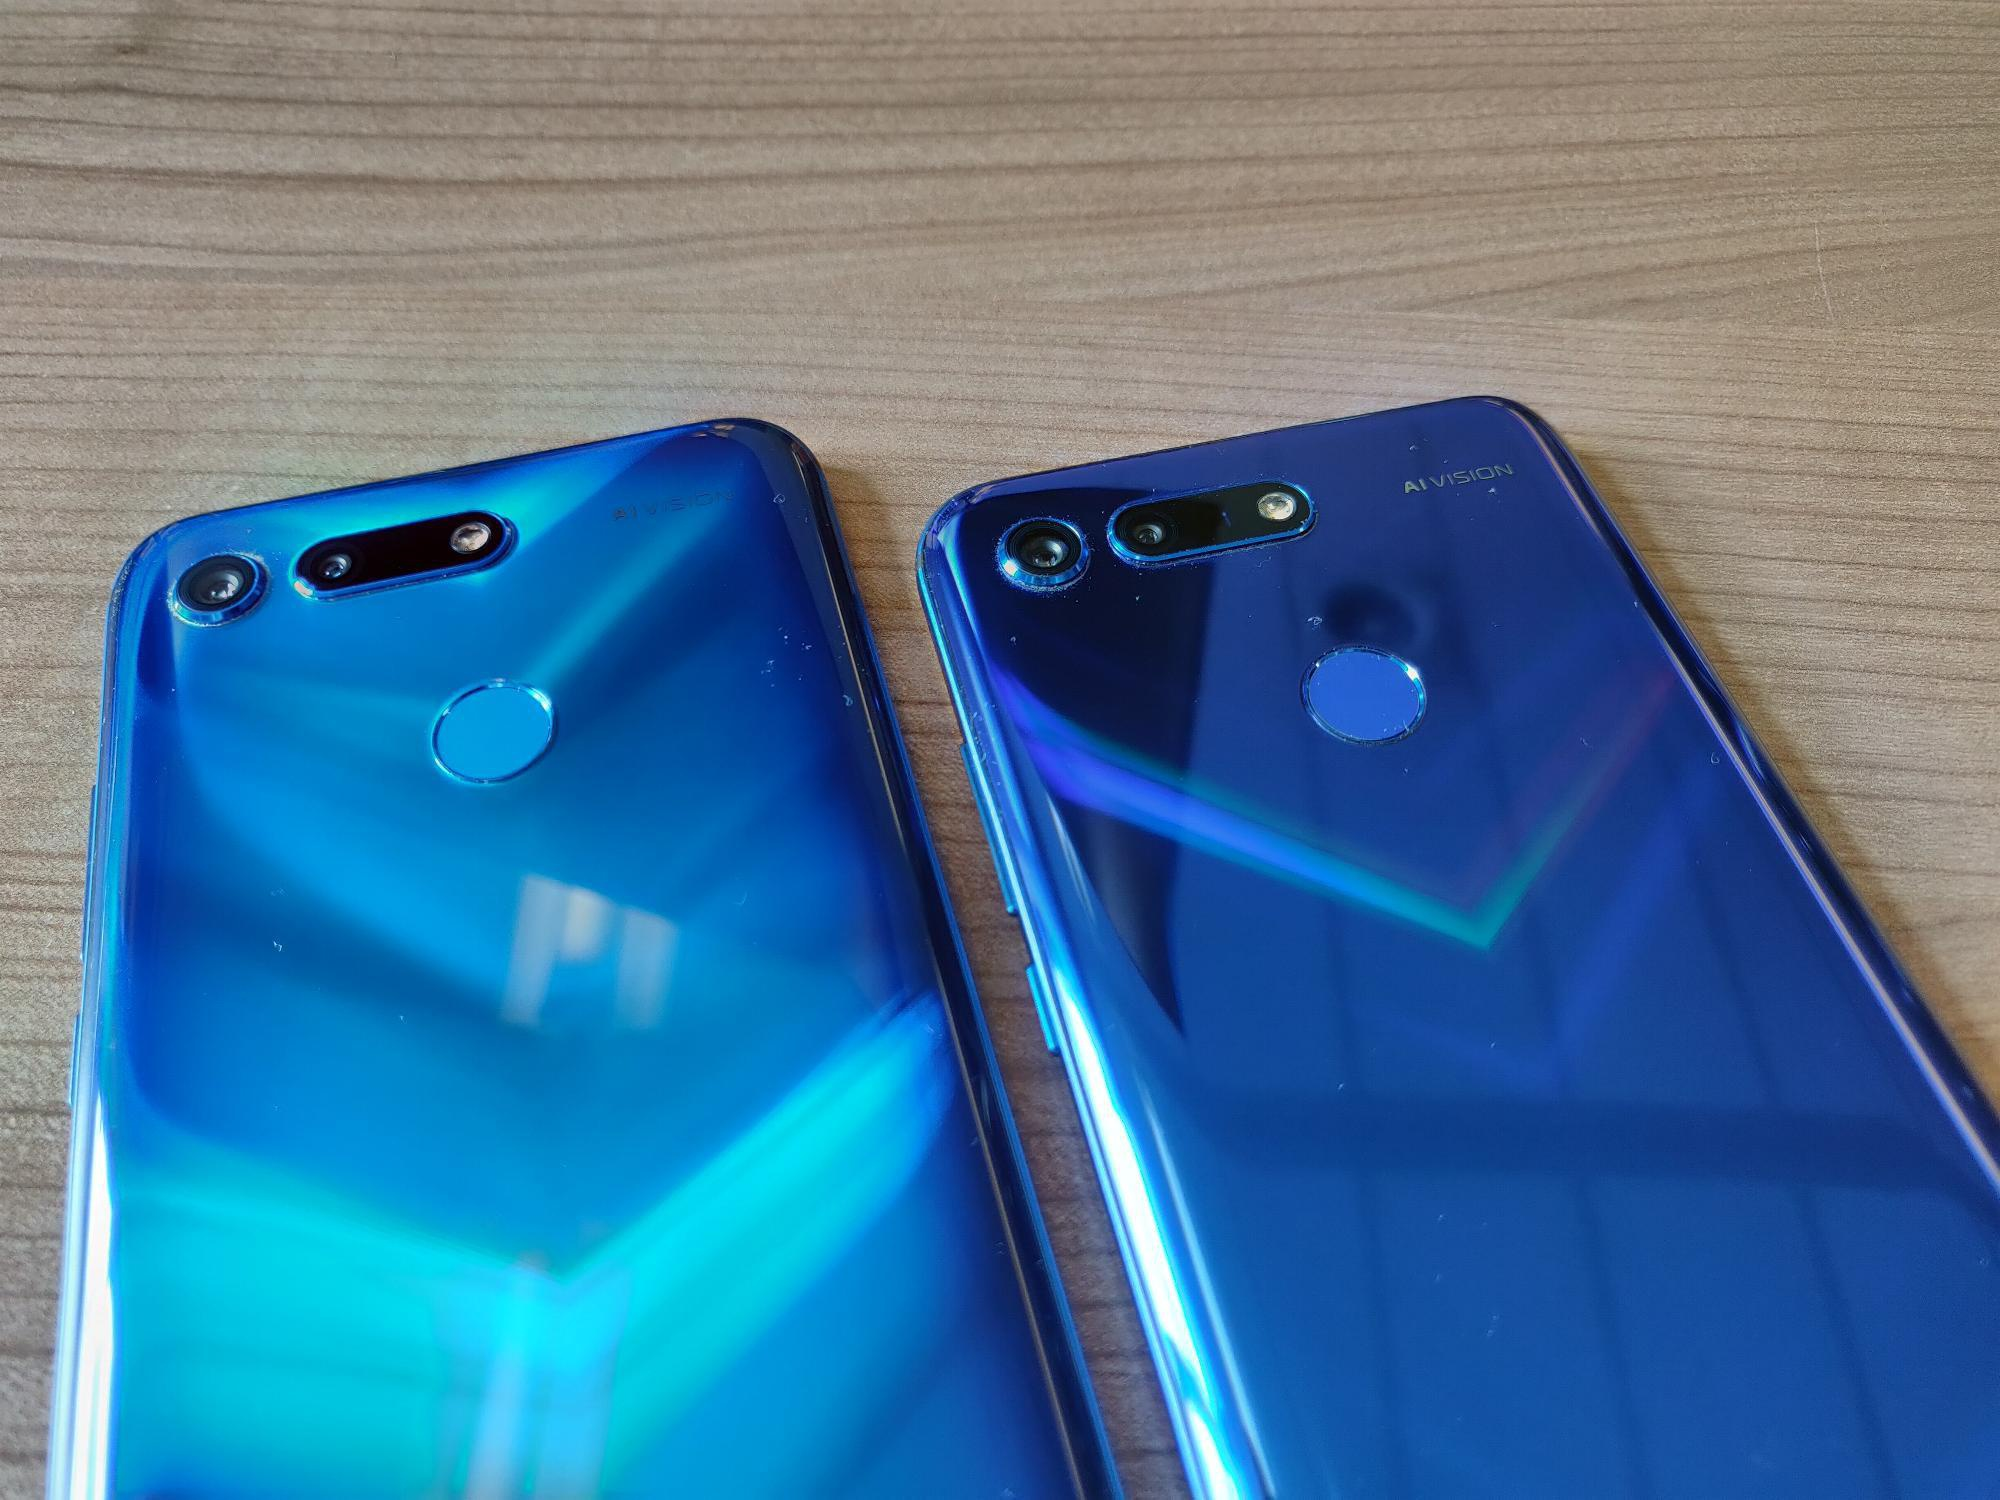 Honor View 20 Phantom Blue (Moschino Edition) vs Sapphire Blue